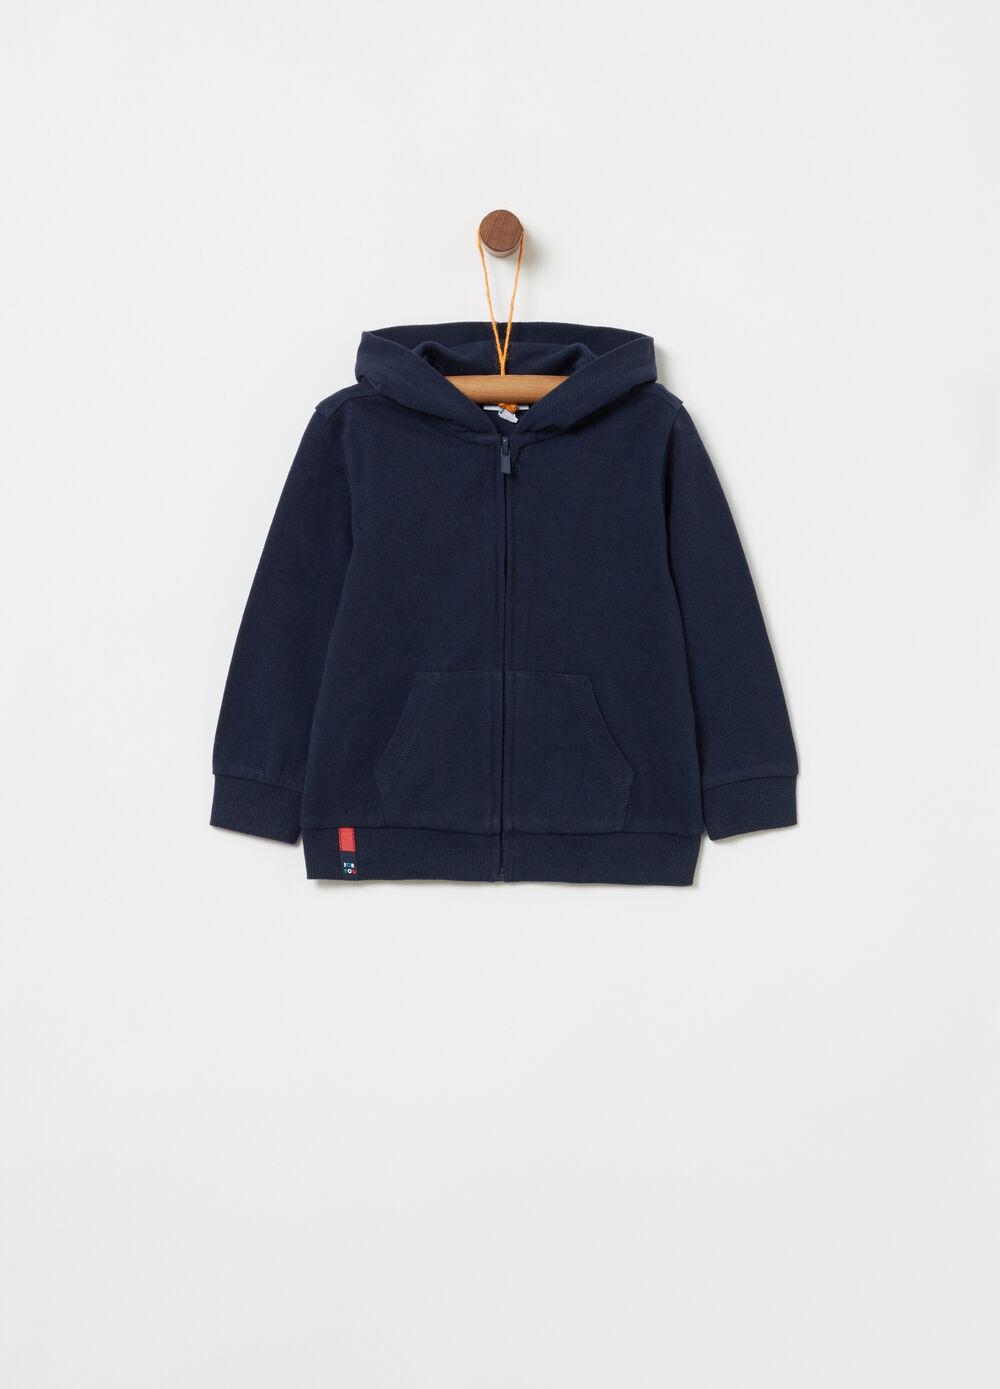 Sweatshirt in 100% cotton with pouch pocket